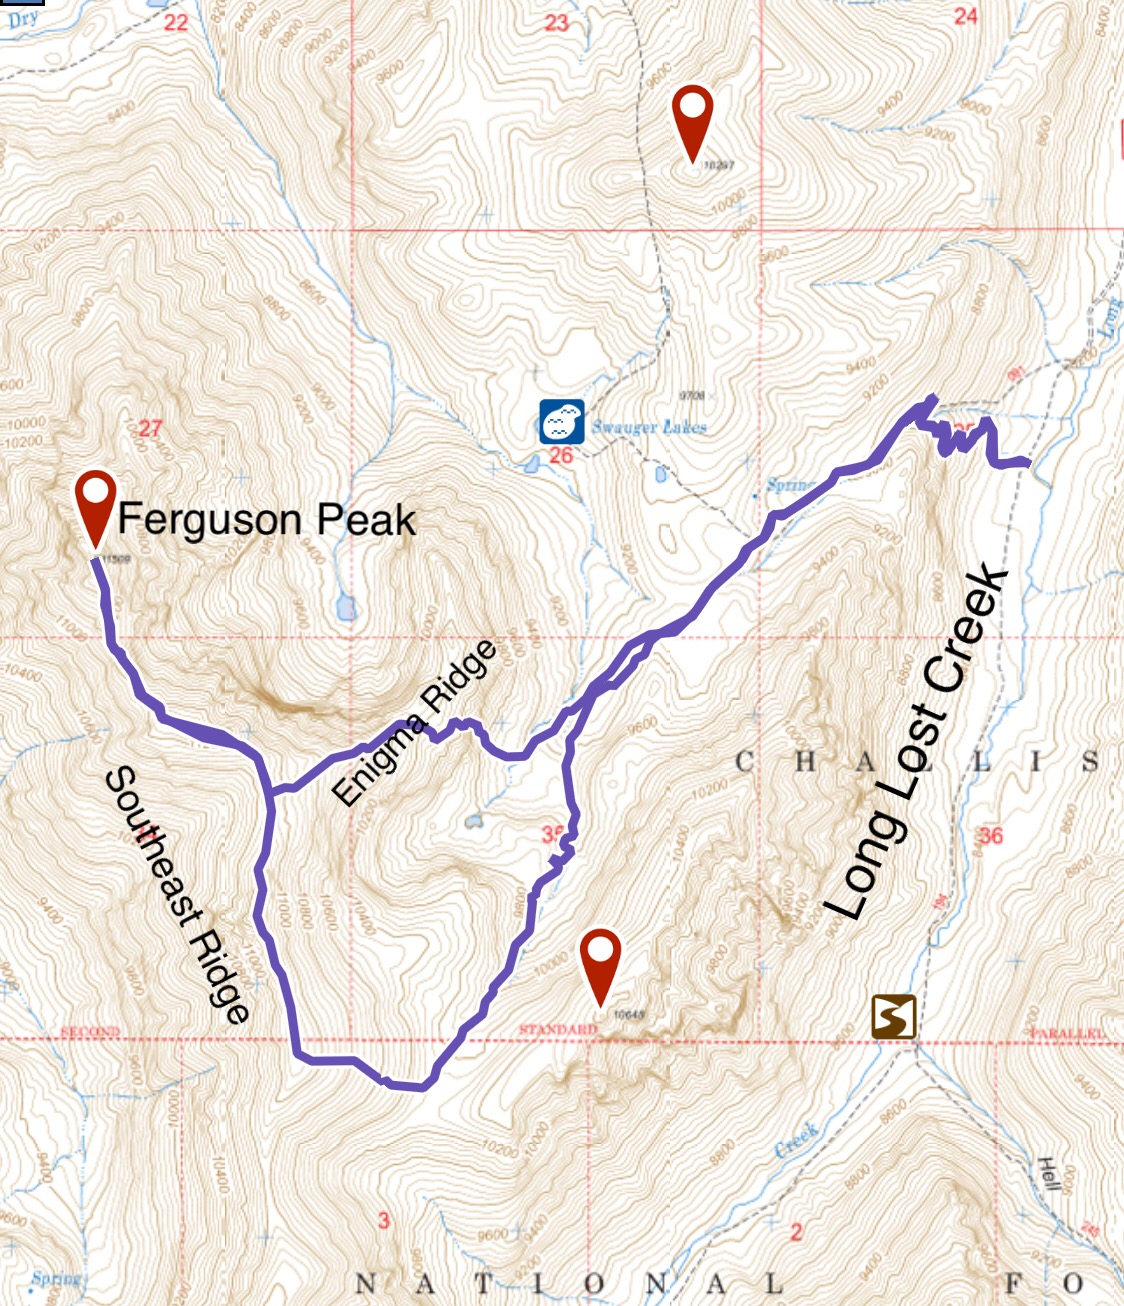 My GPS track for Ferguson Peak. The Enigma Ridge will ne discussed below.